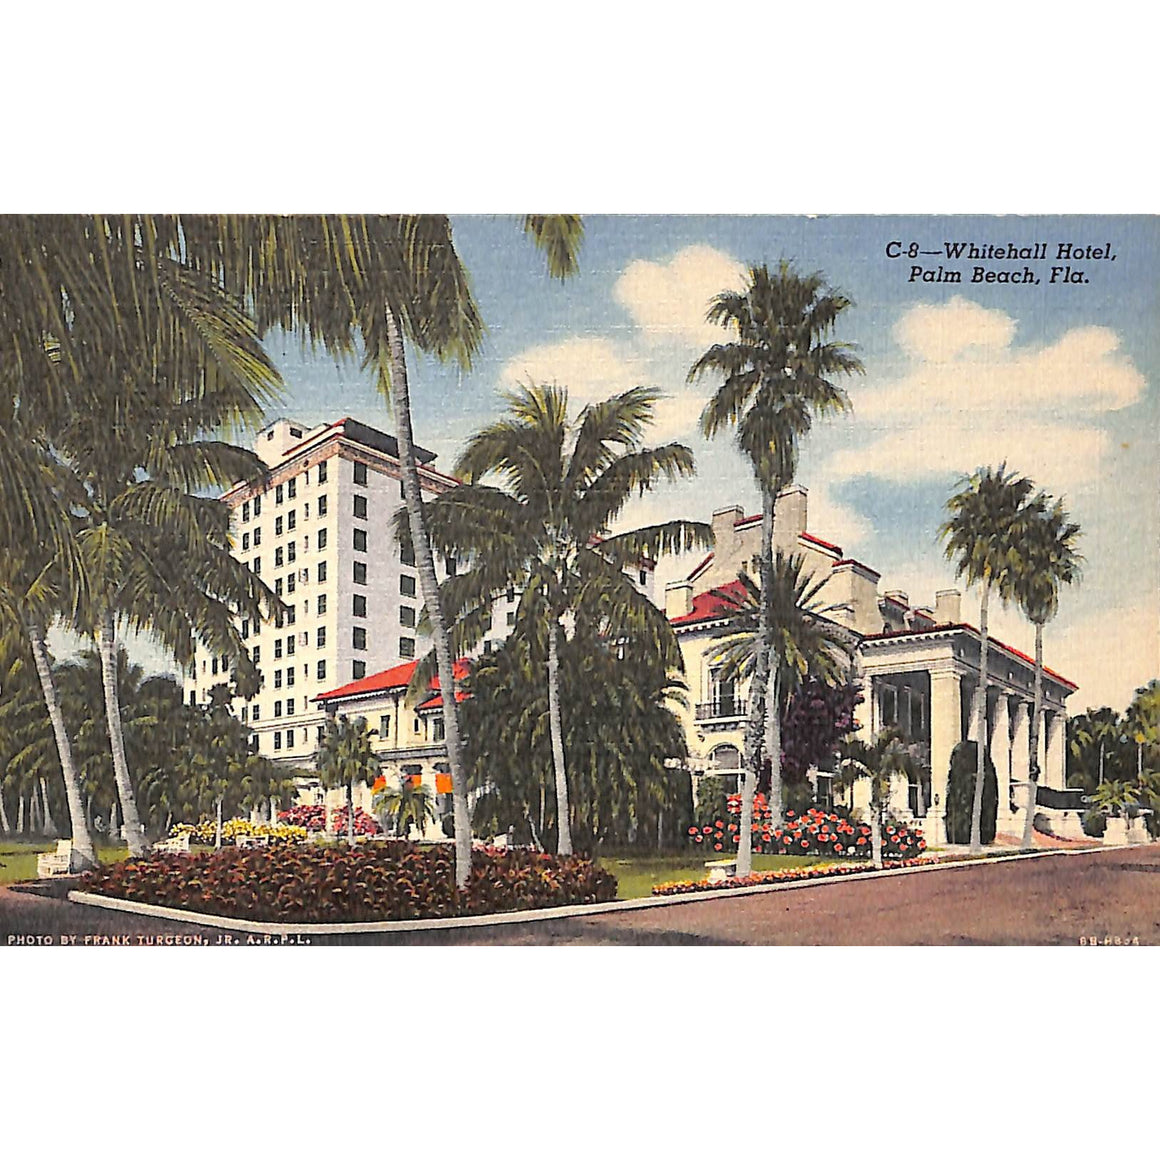 Whitehall Hotel, Palm Beach Post Card